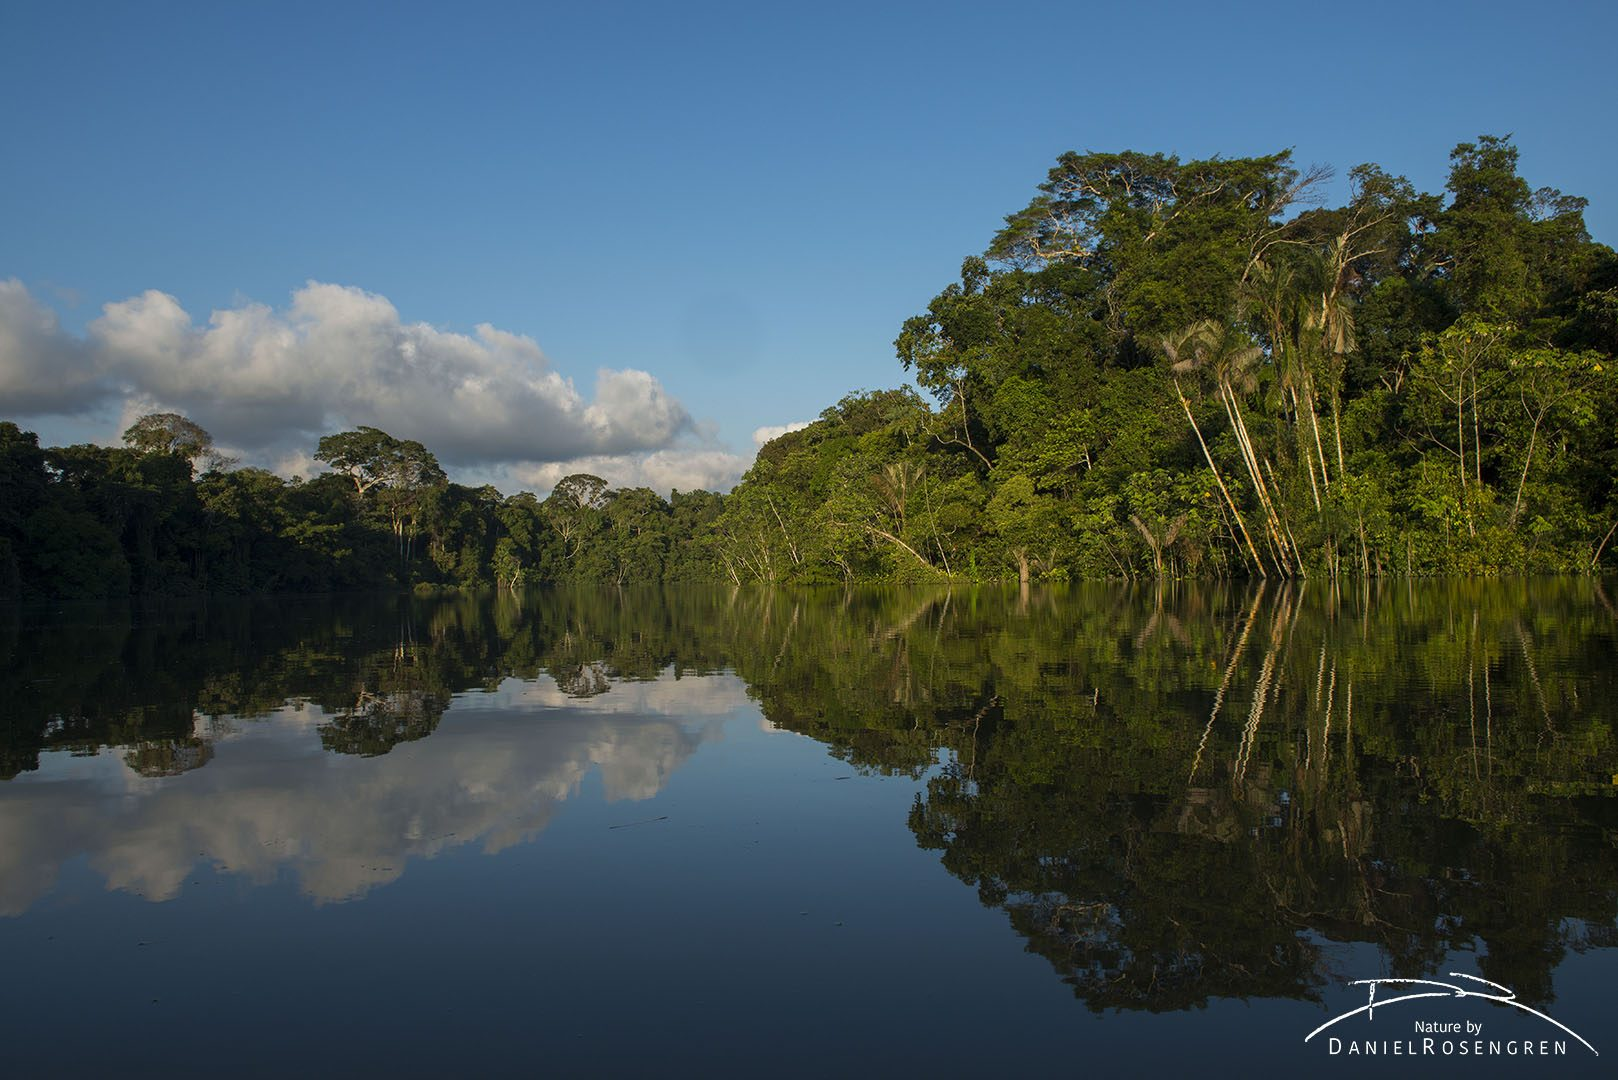 The rainforest along the River Yaguas. © Daniel Rosengren